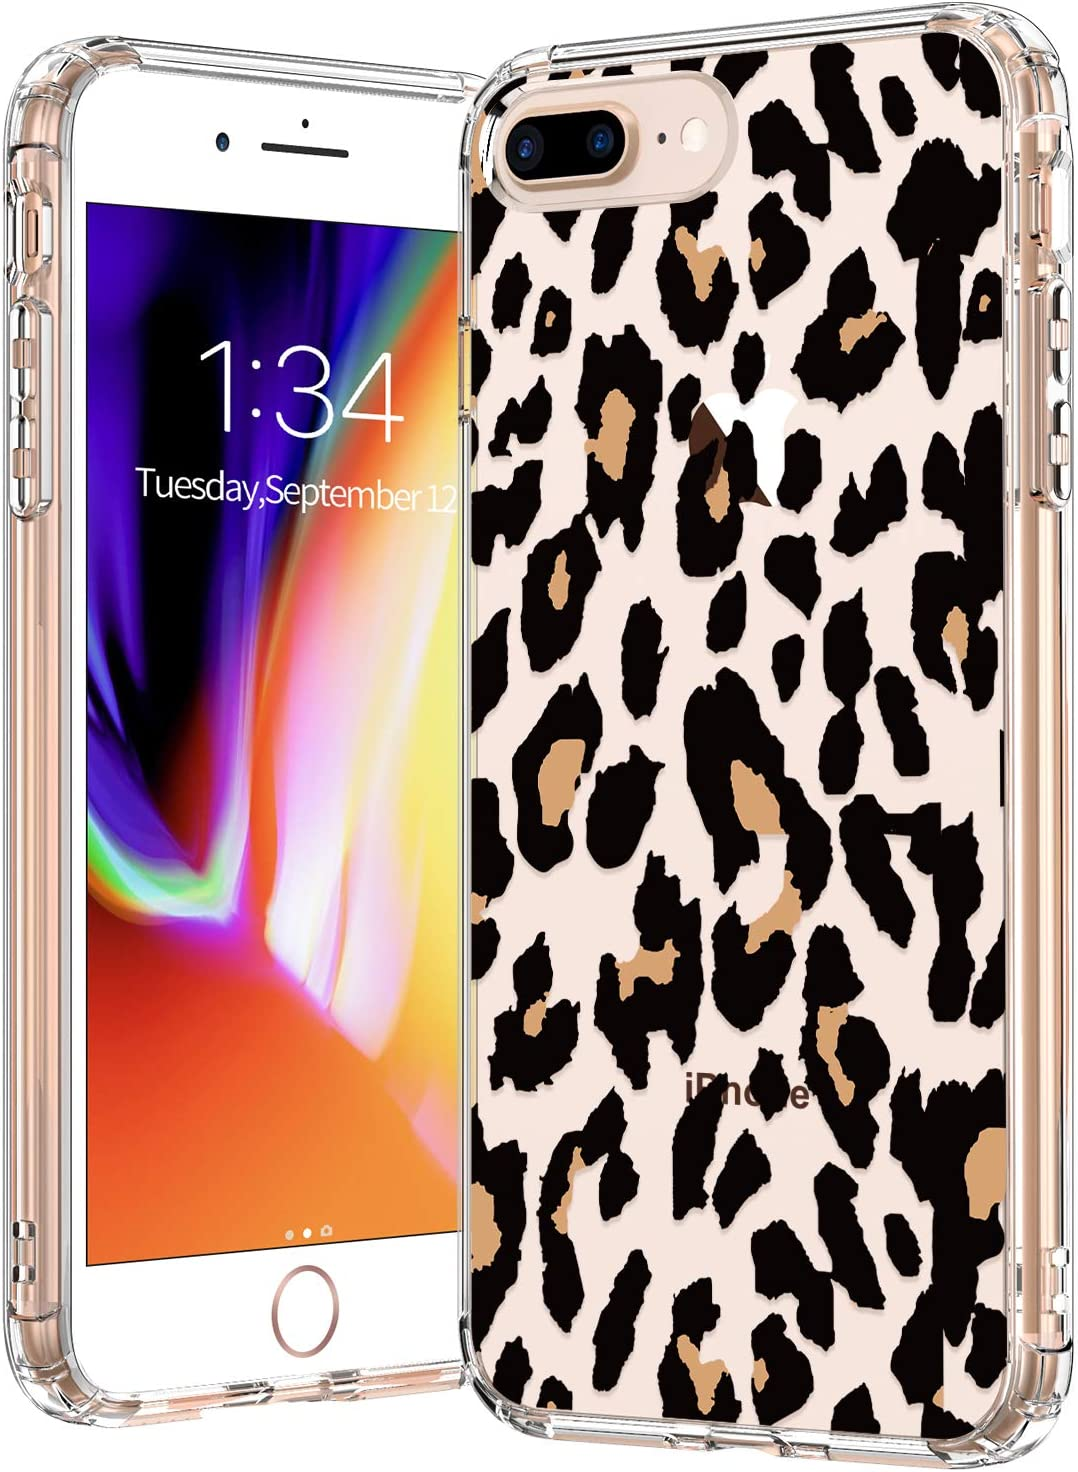 BICOL iPhone 8 Plus Case,iPhone 7 Plus Case Clear with Design for Girls Women,12ft Drop Tested,Slip Resistant Slim Fit Protective Phone Case for Apple iPhone 8 Plus/7 Plus Leopard Patterns